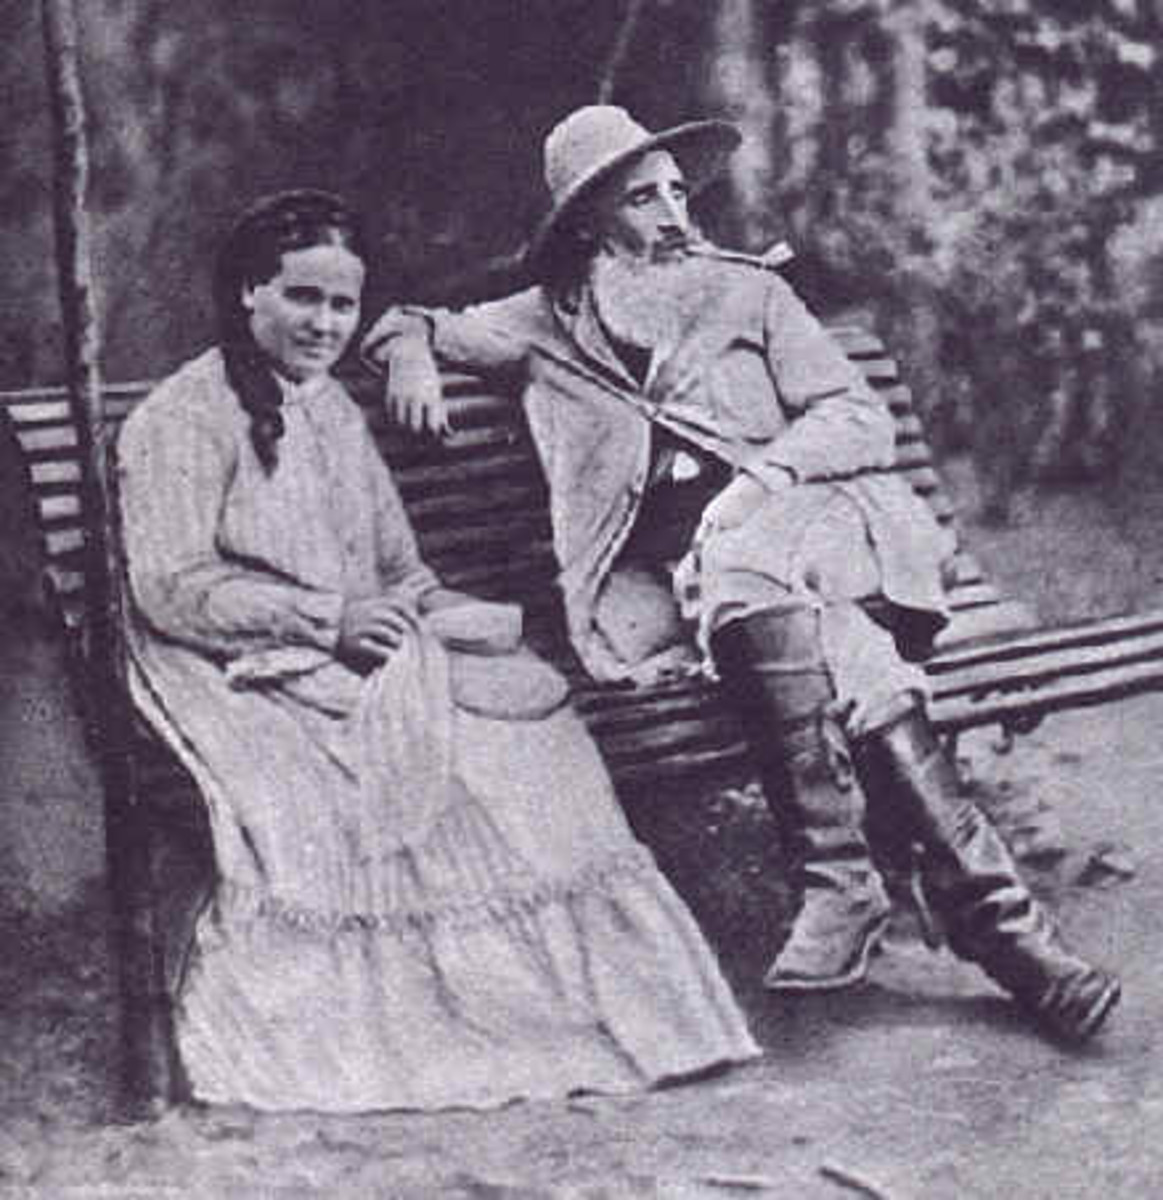 A photograph of Pissarro that was taken in 1877.